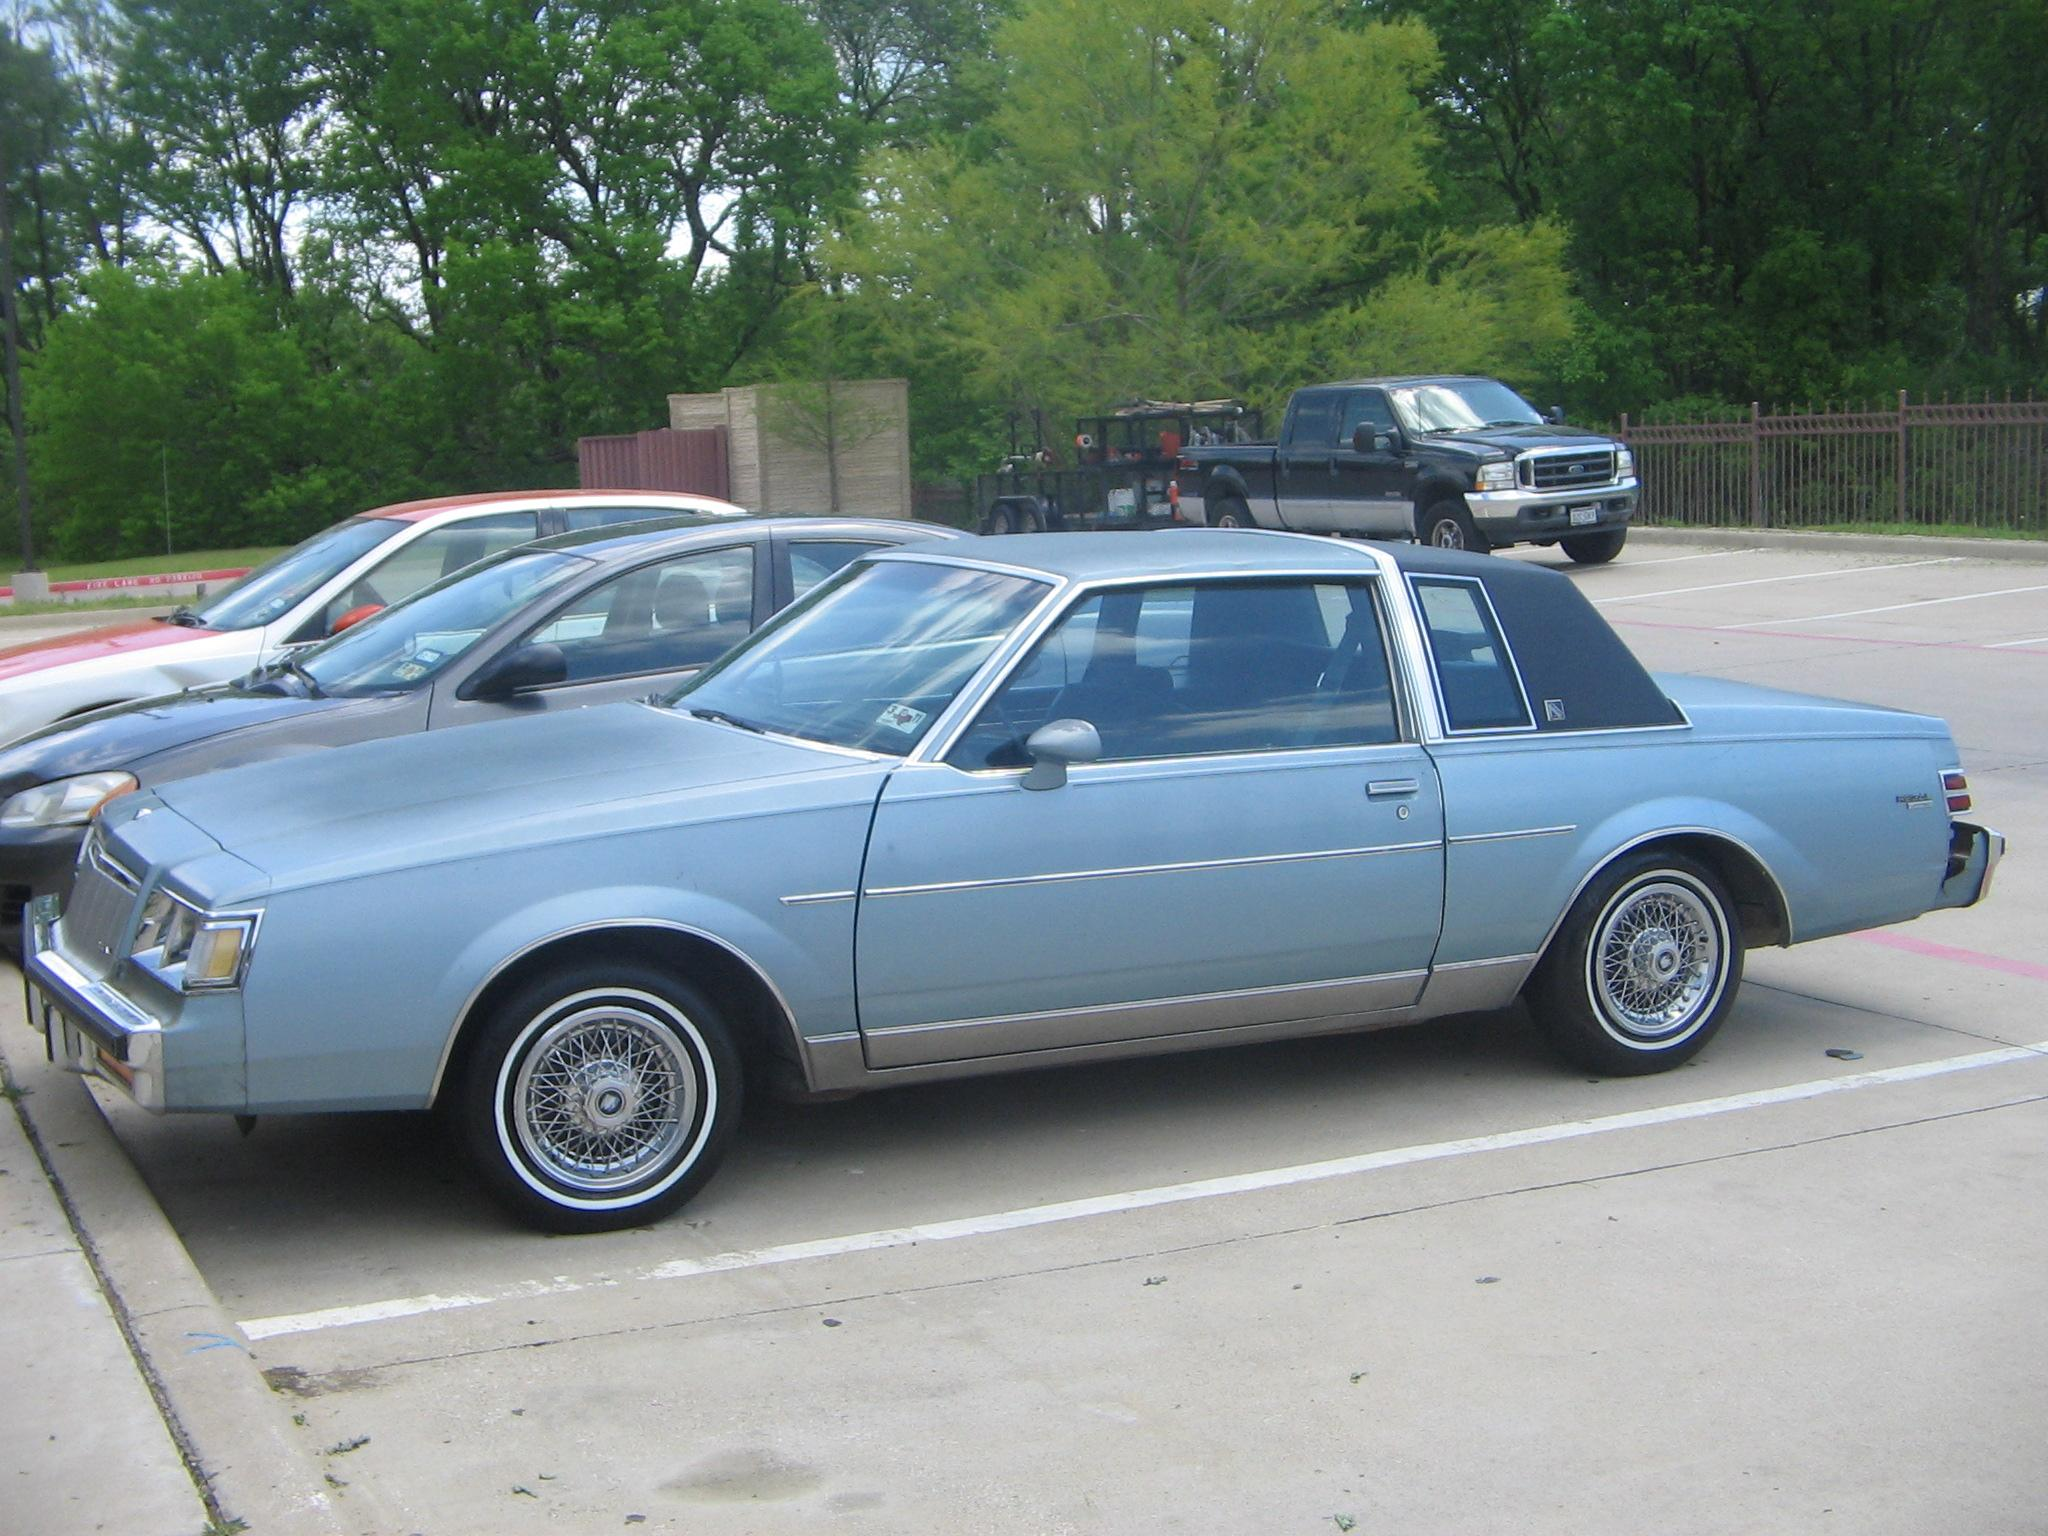 Blakking 1986 buick regal